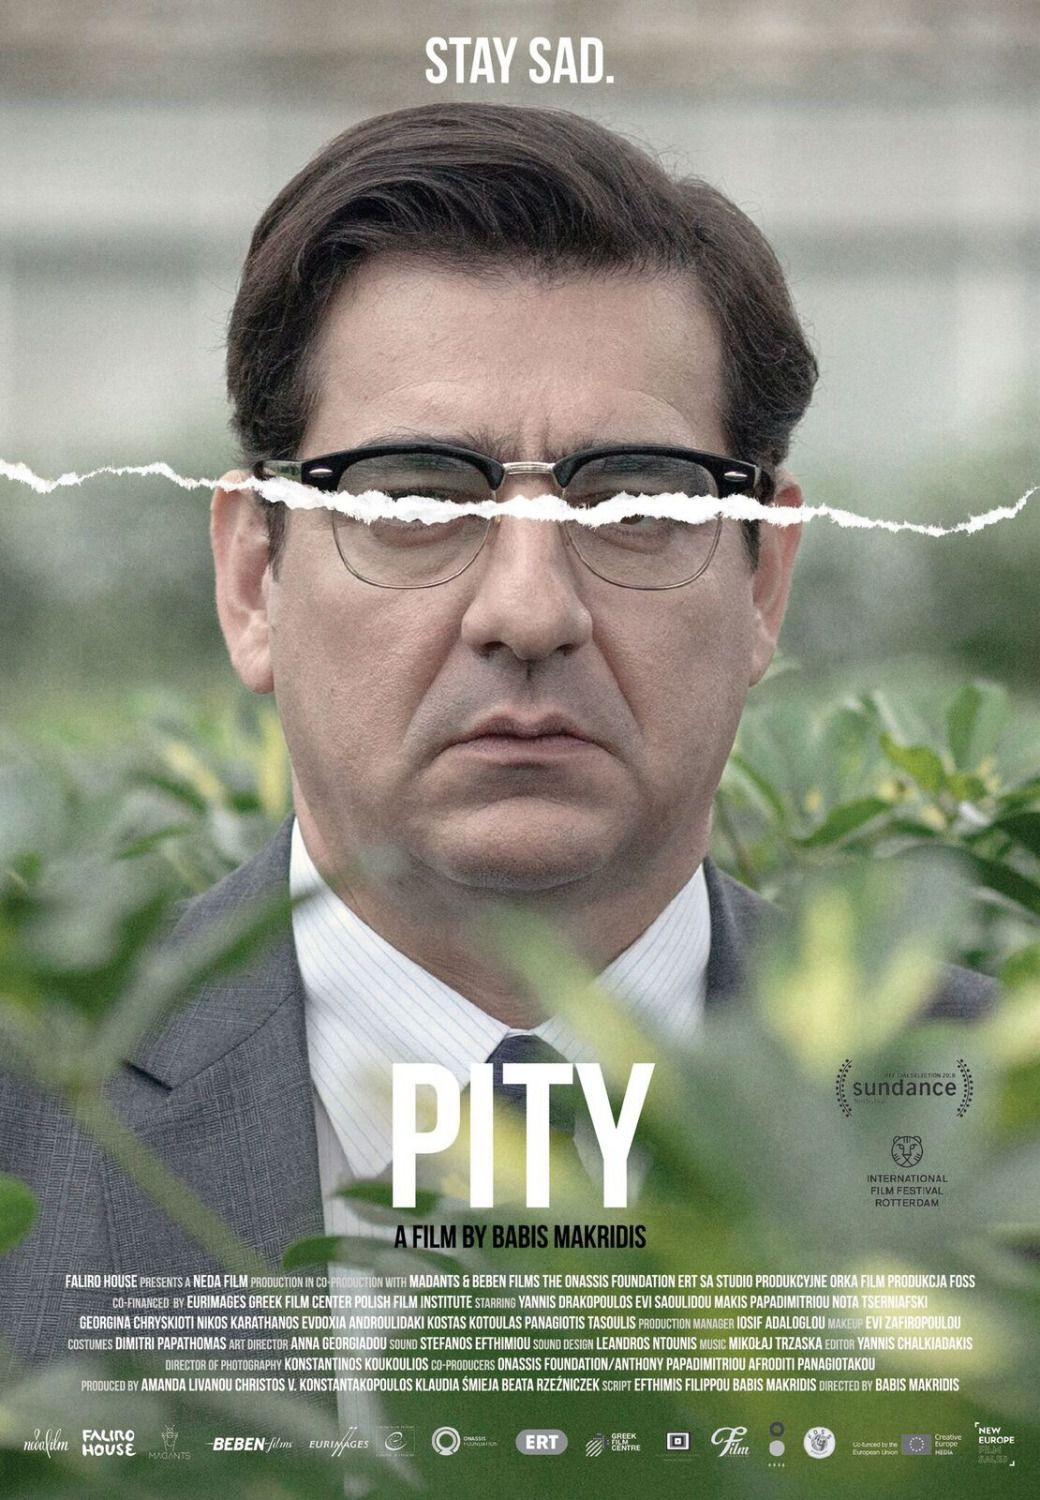 Pity by Babis Makridis - Stay Sad - film poster